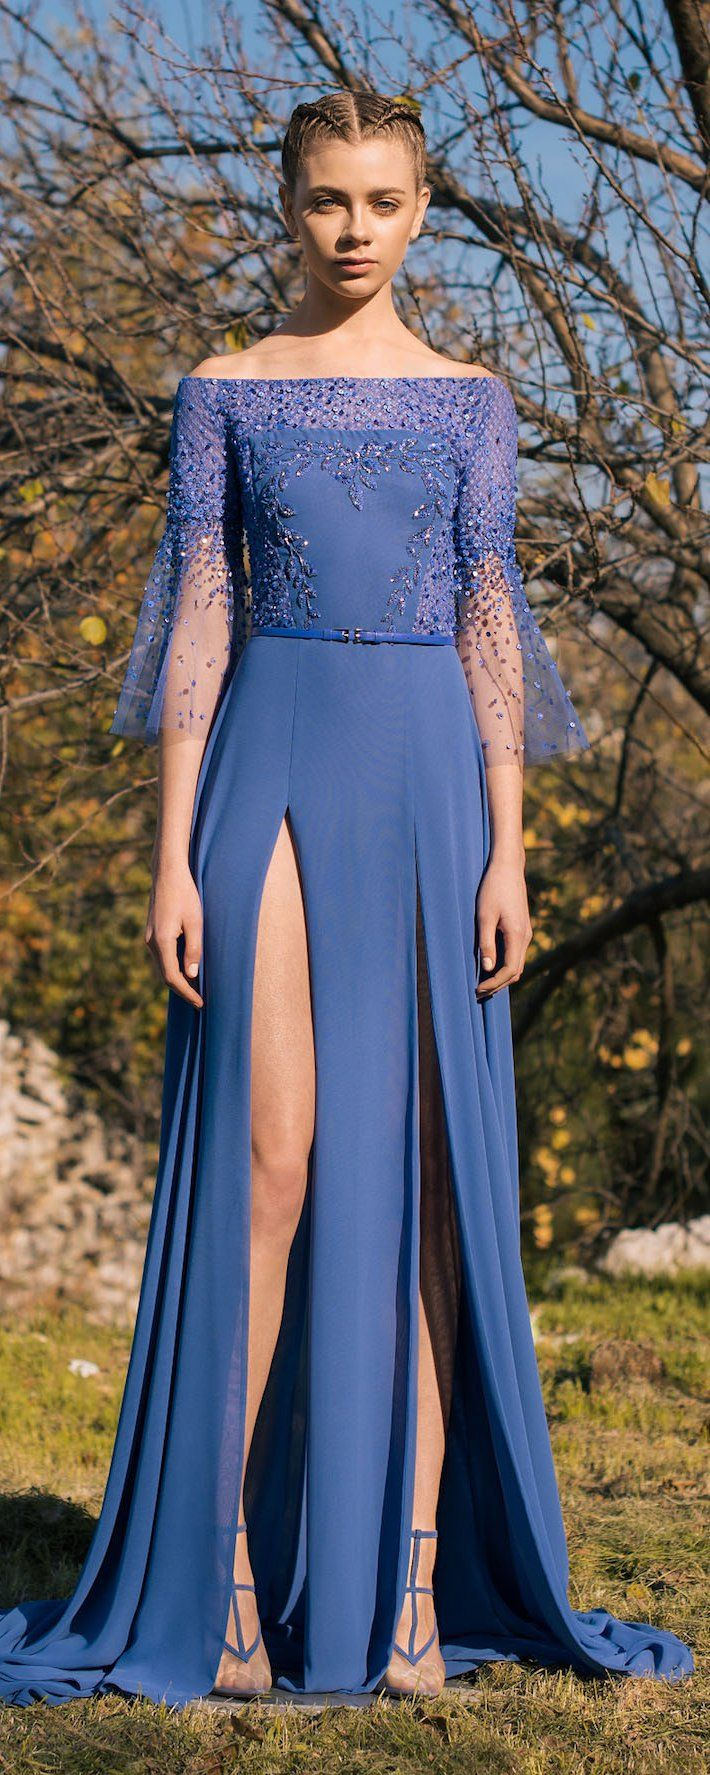 Georges Hobeika Pre-Fall 2018 - Ready-to-Wear - http://www.orientpalms.com/Georges-Hobeika-7002